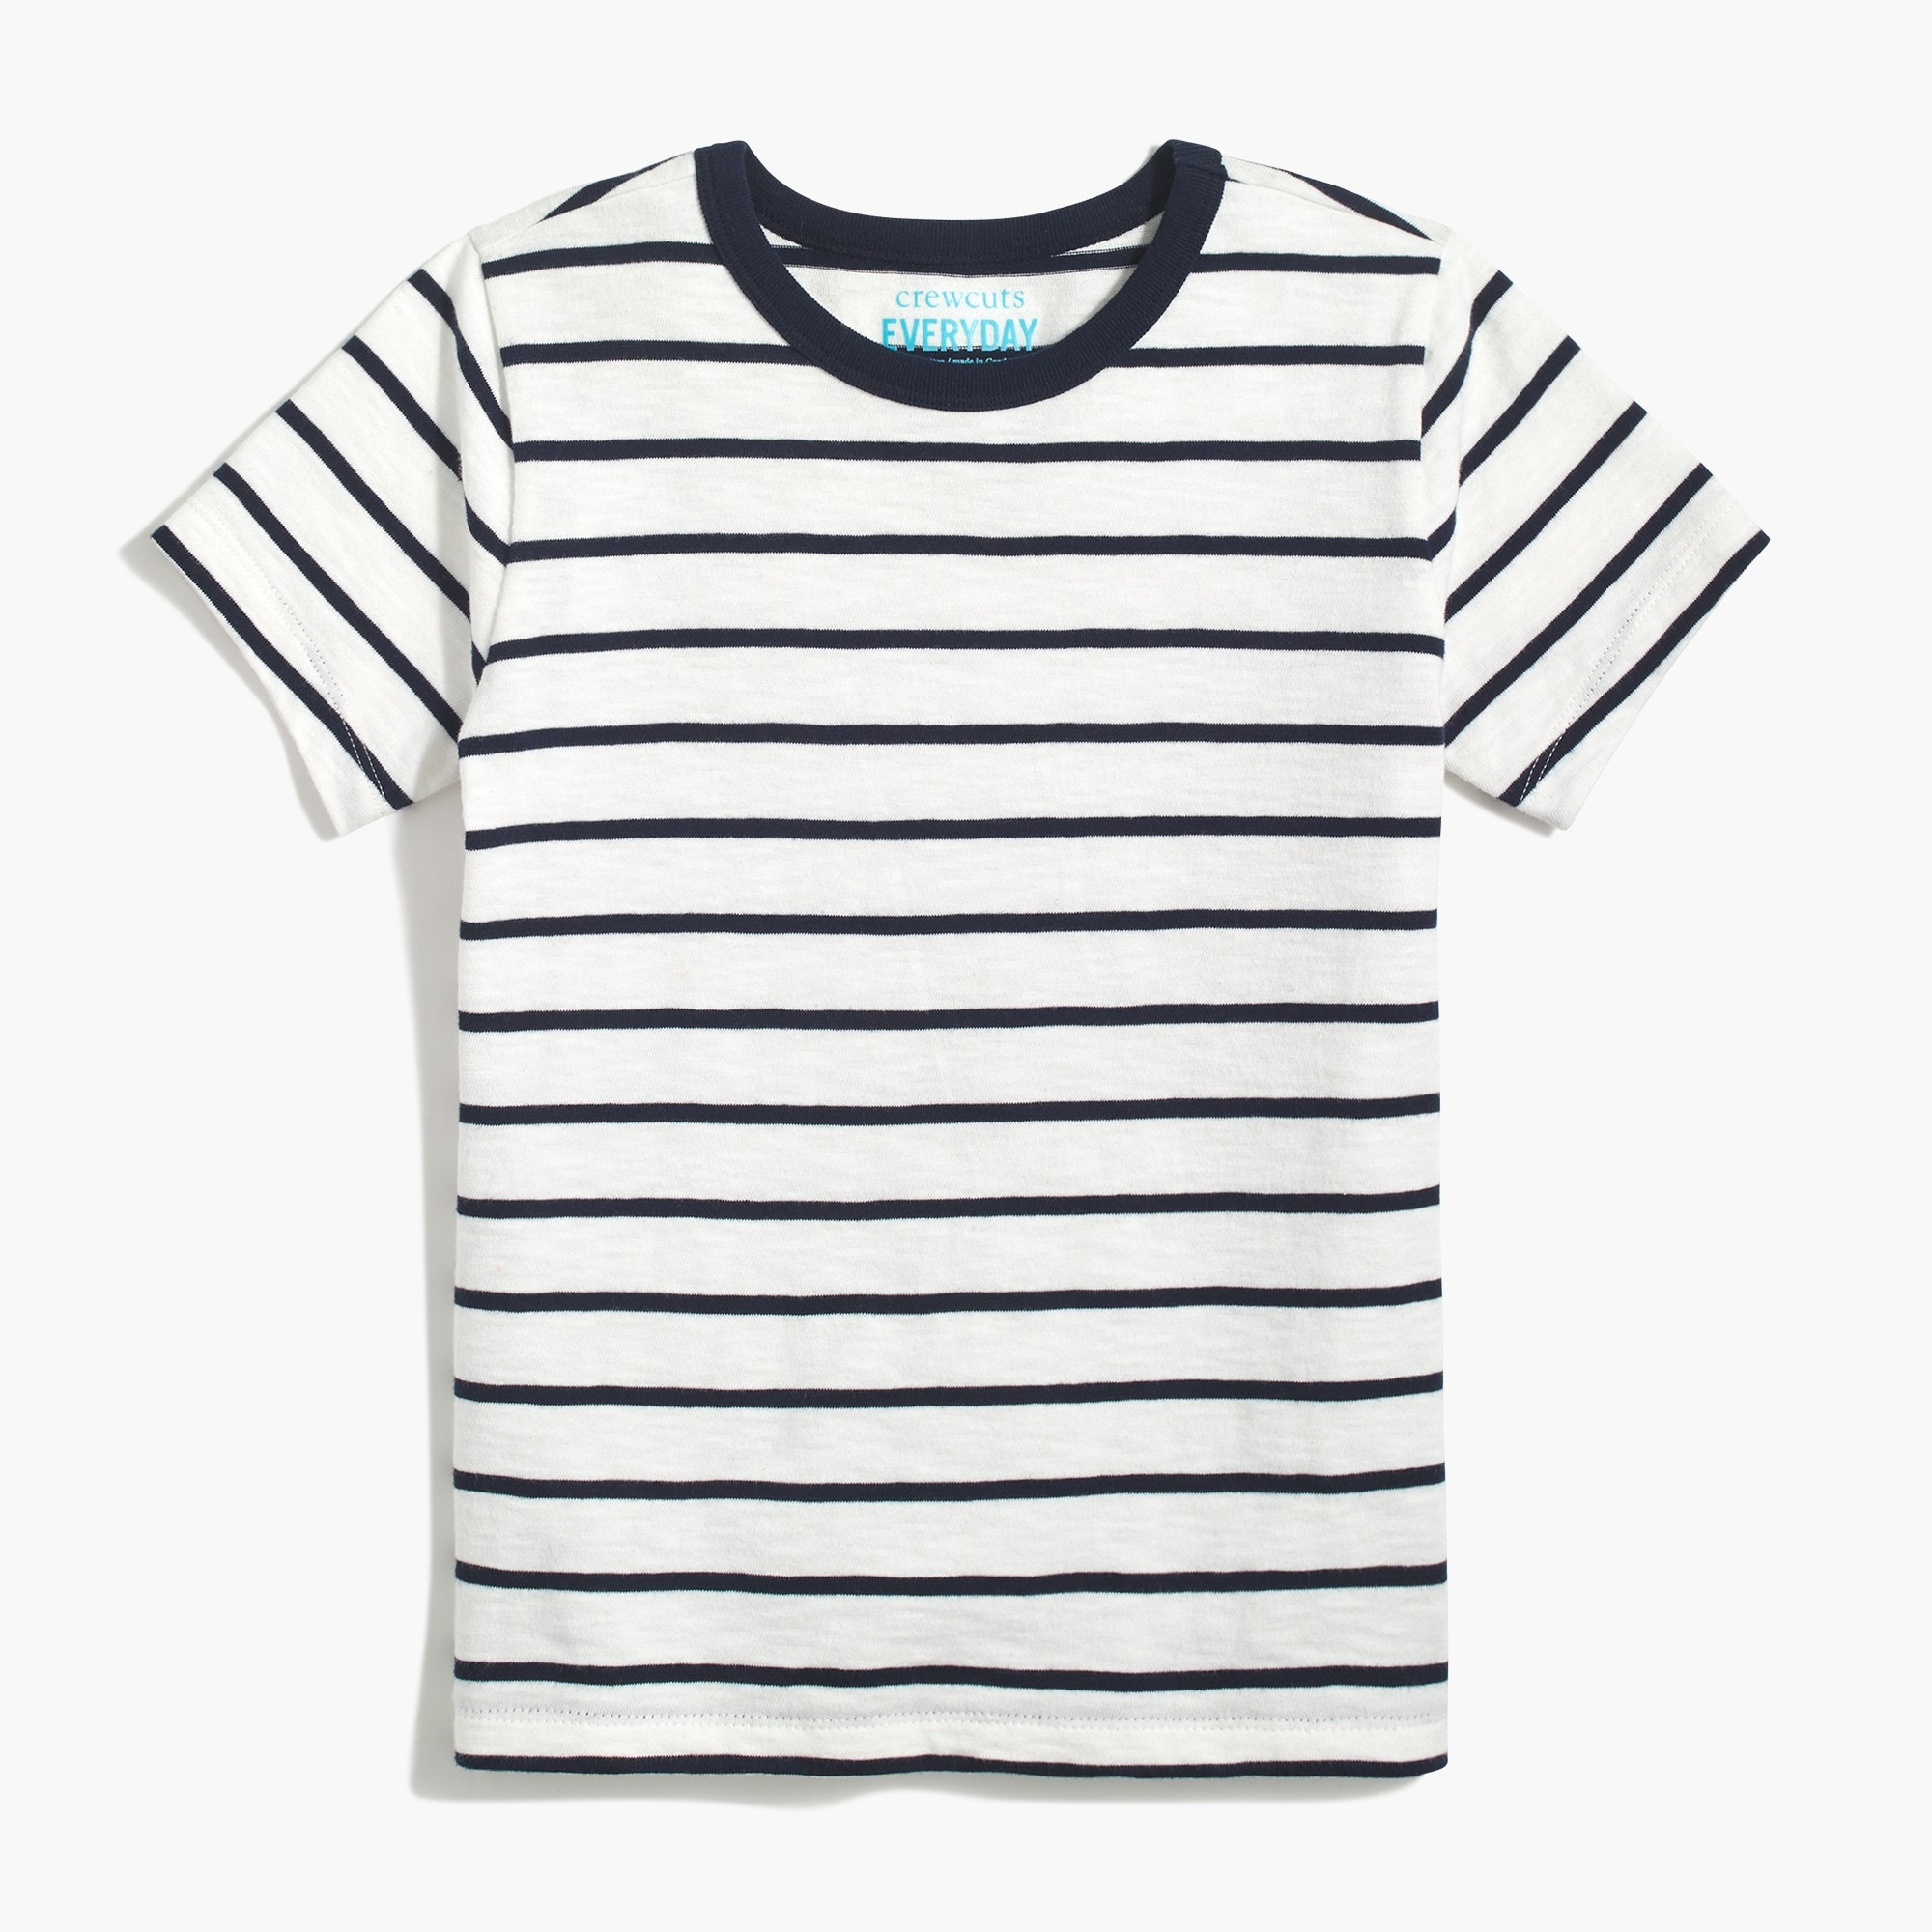 Boys' short-sleeve t-shirt in classic stripe factoryboys knits & t-shirts c